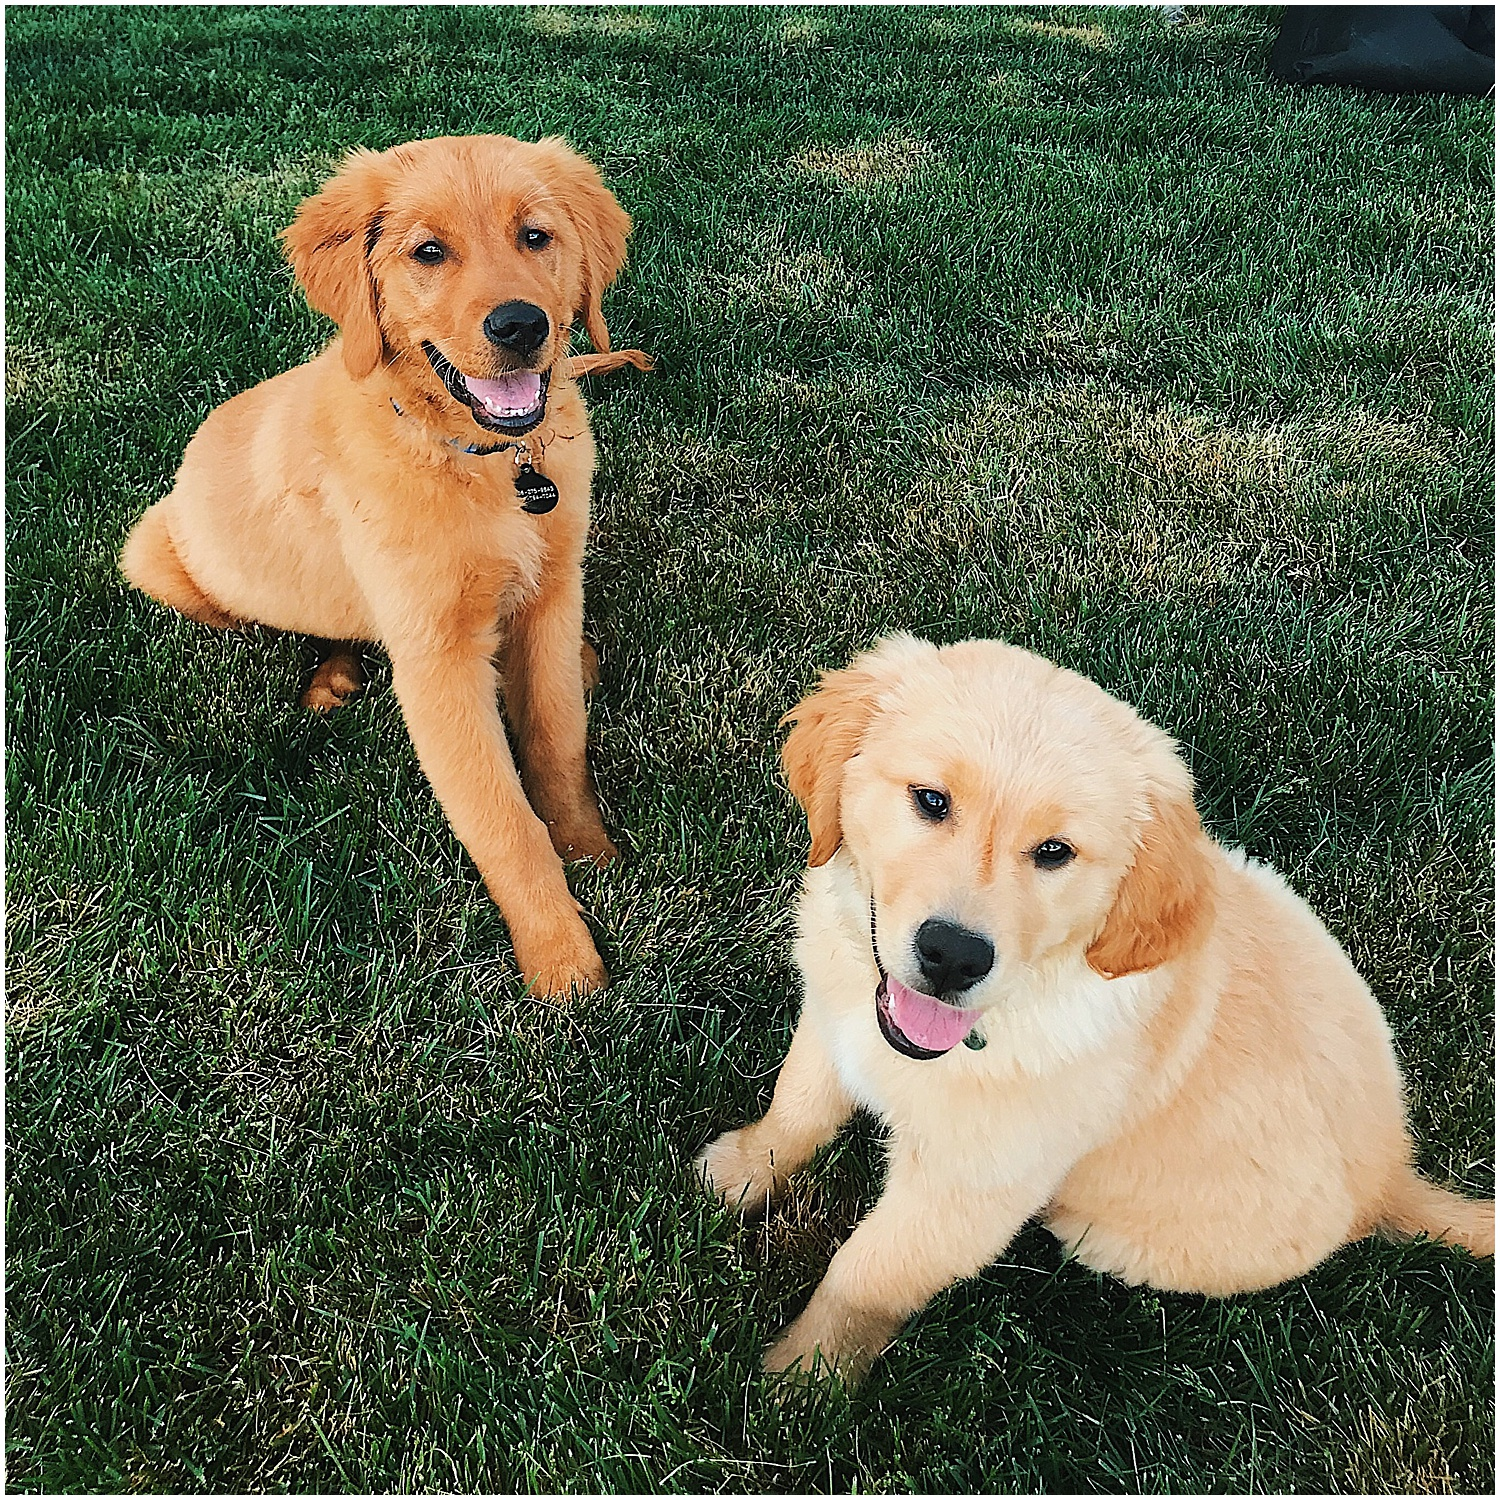 we made it to twin falls and dodger met his new buddy Beau who is also a golden